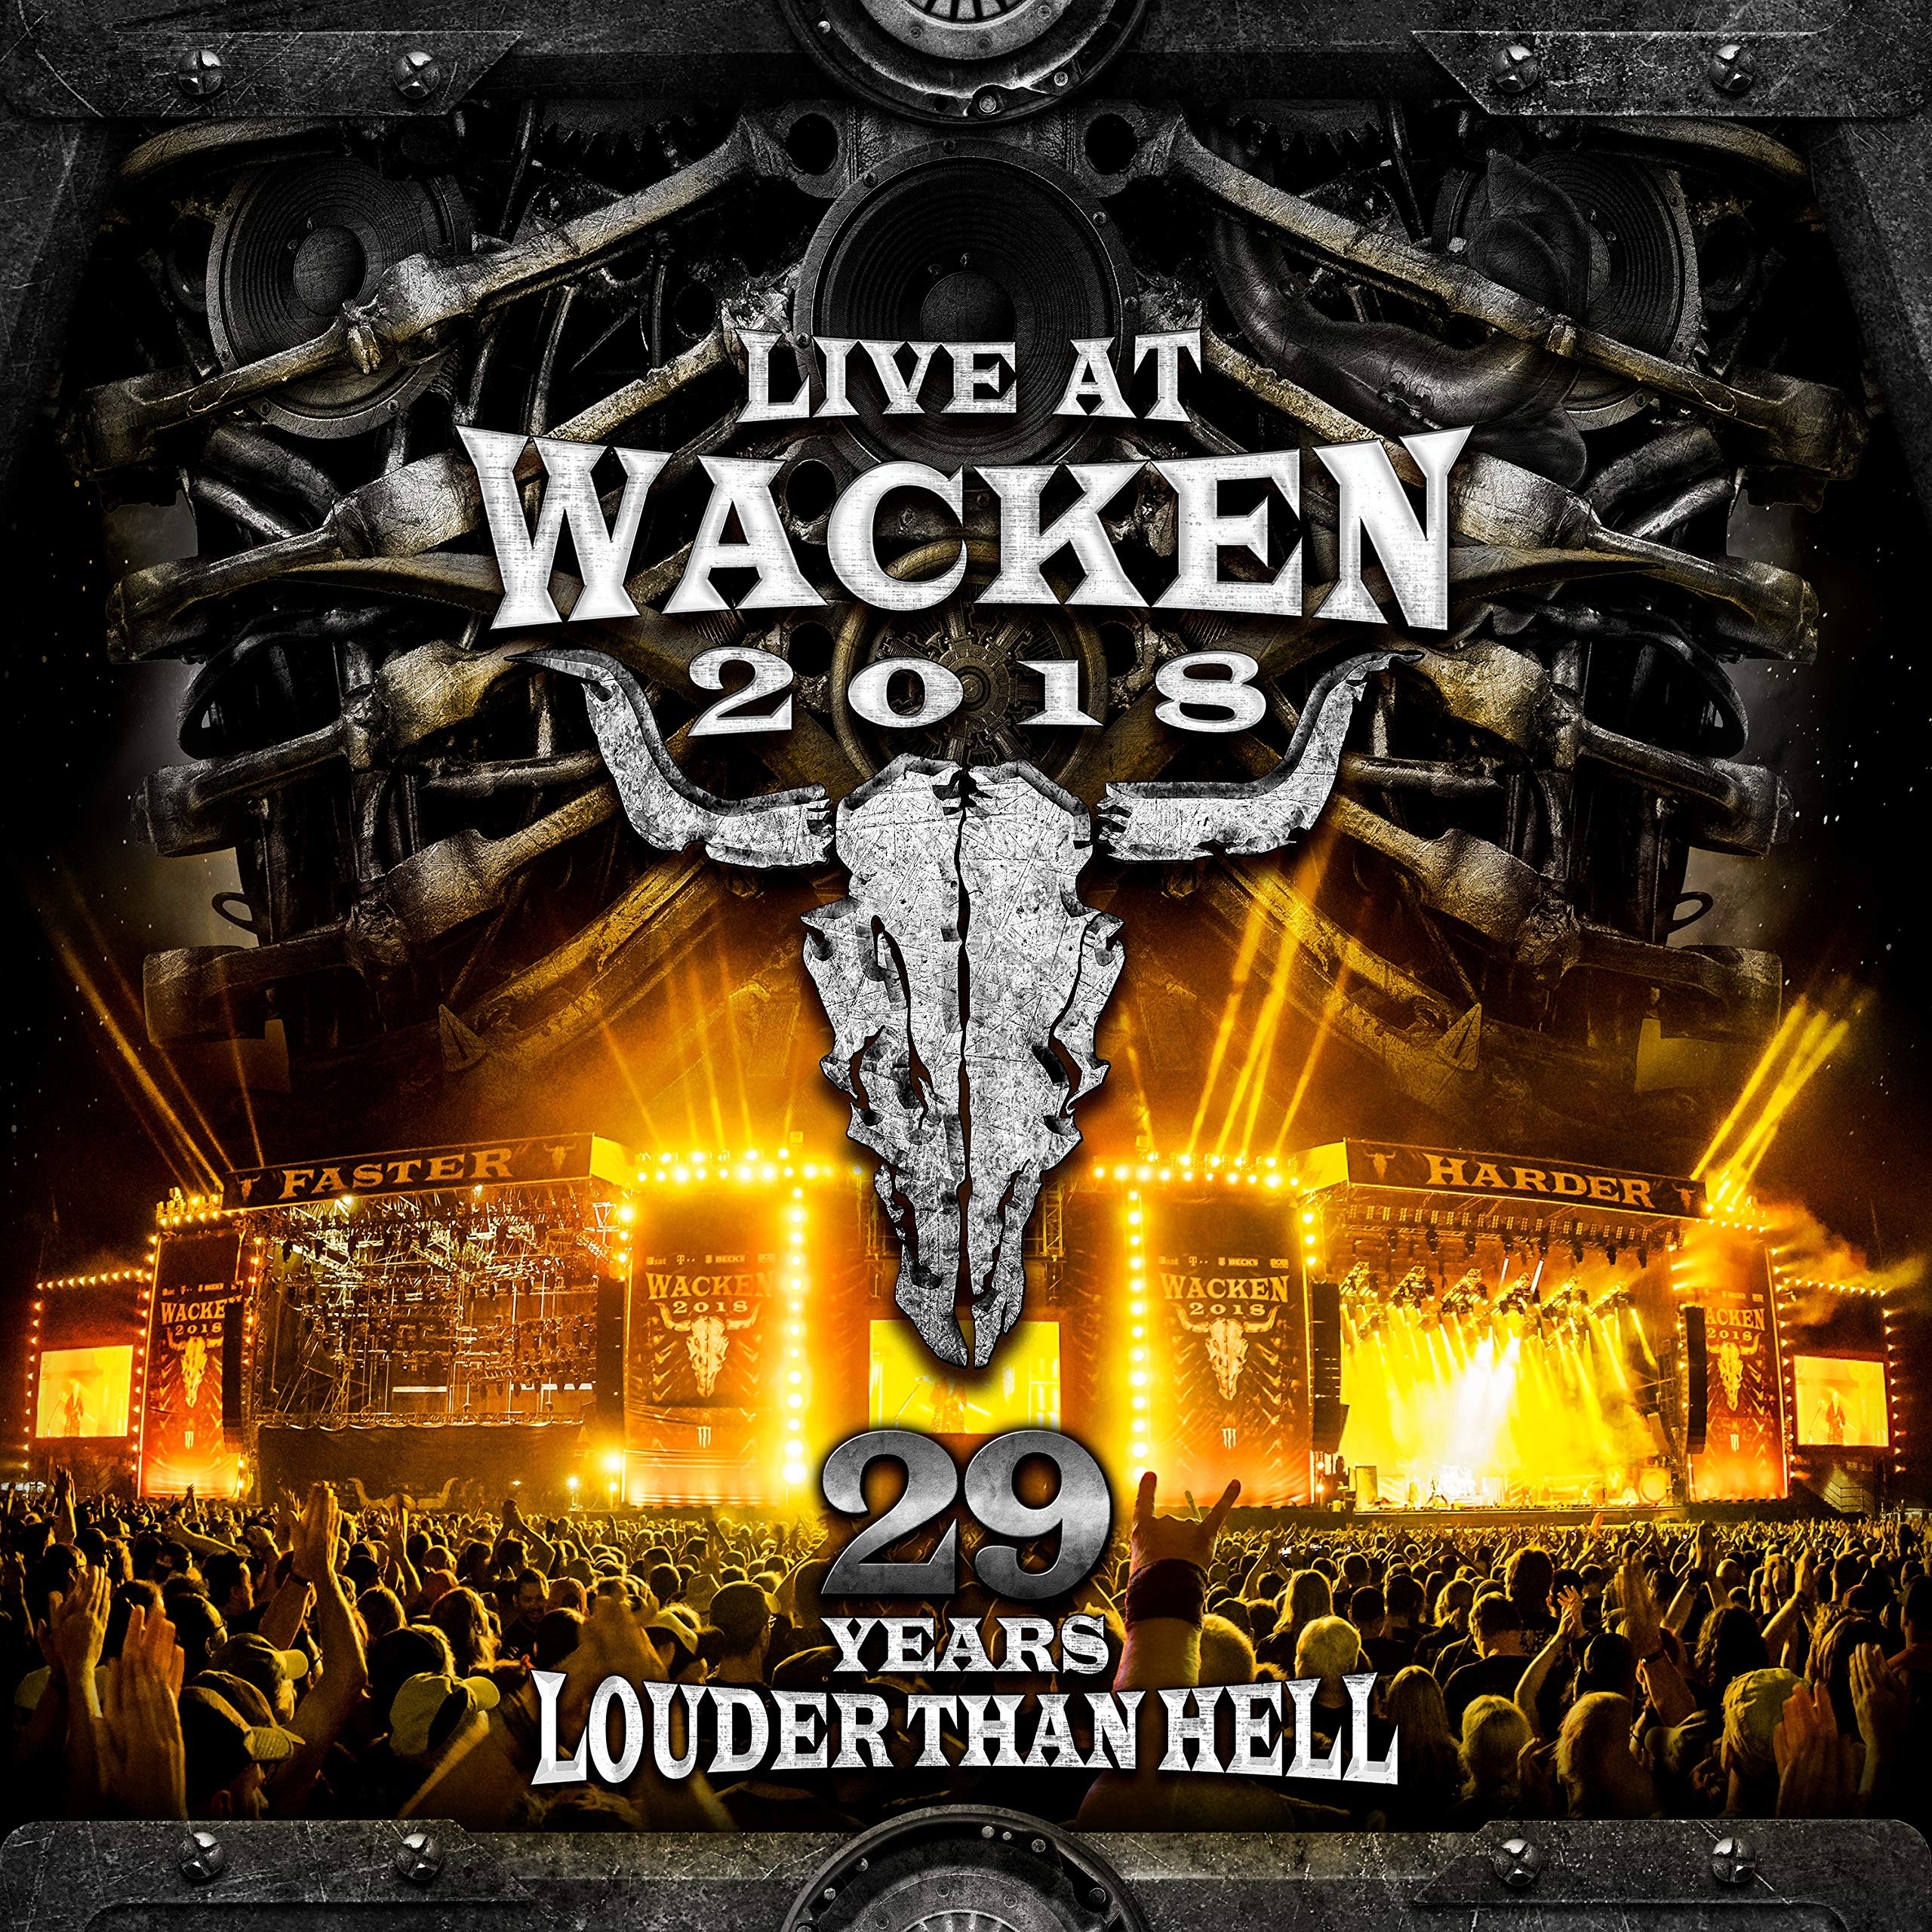 VA - Live At Wacken 2018 29 Years Louder Than Hell (2019) [FLAC] Download